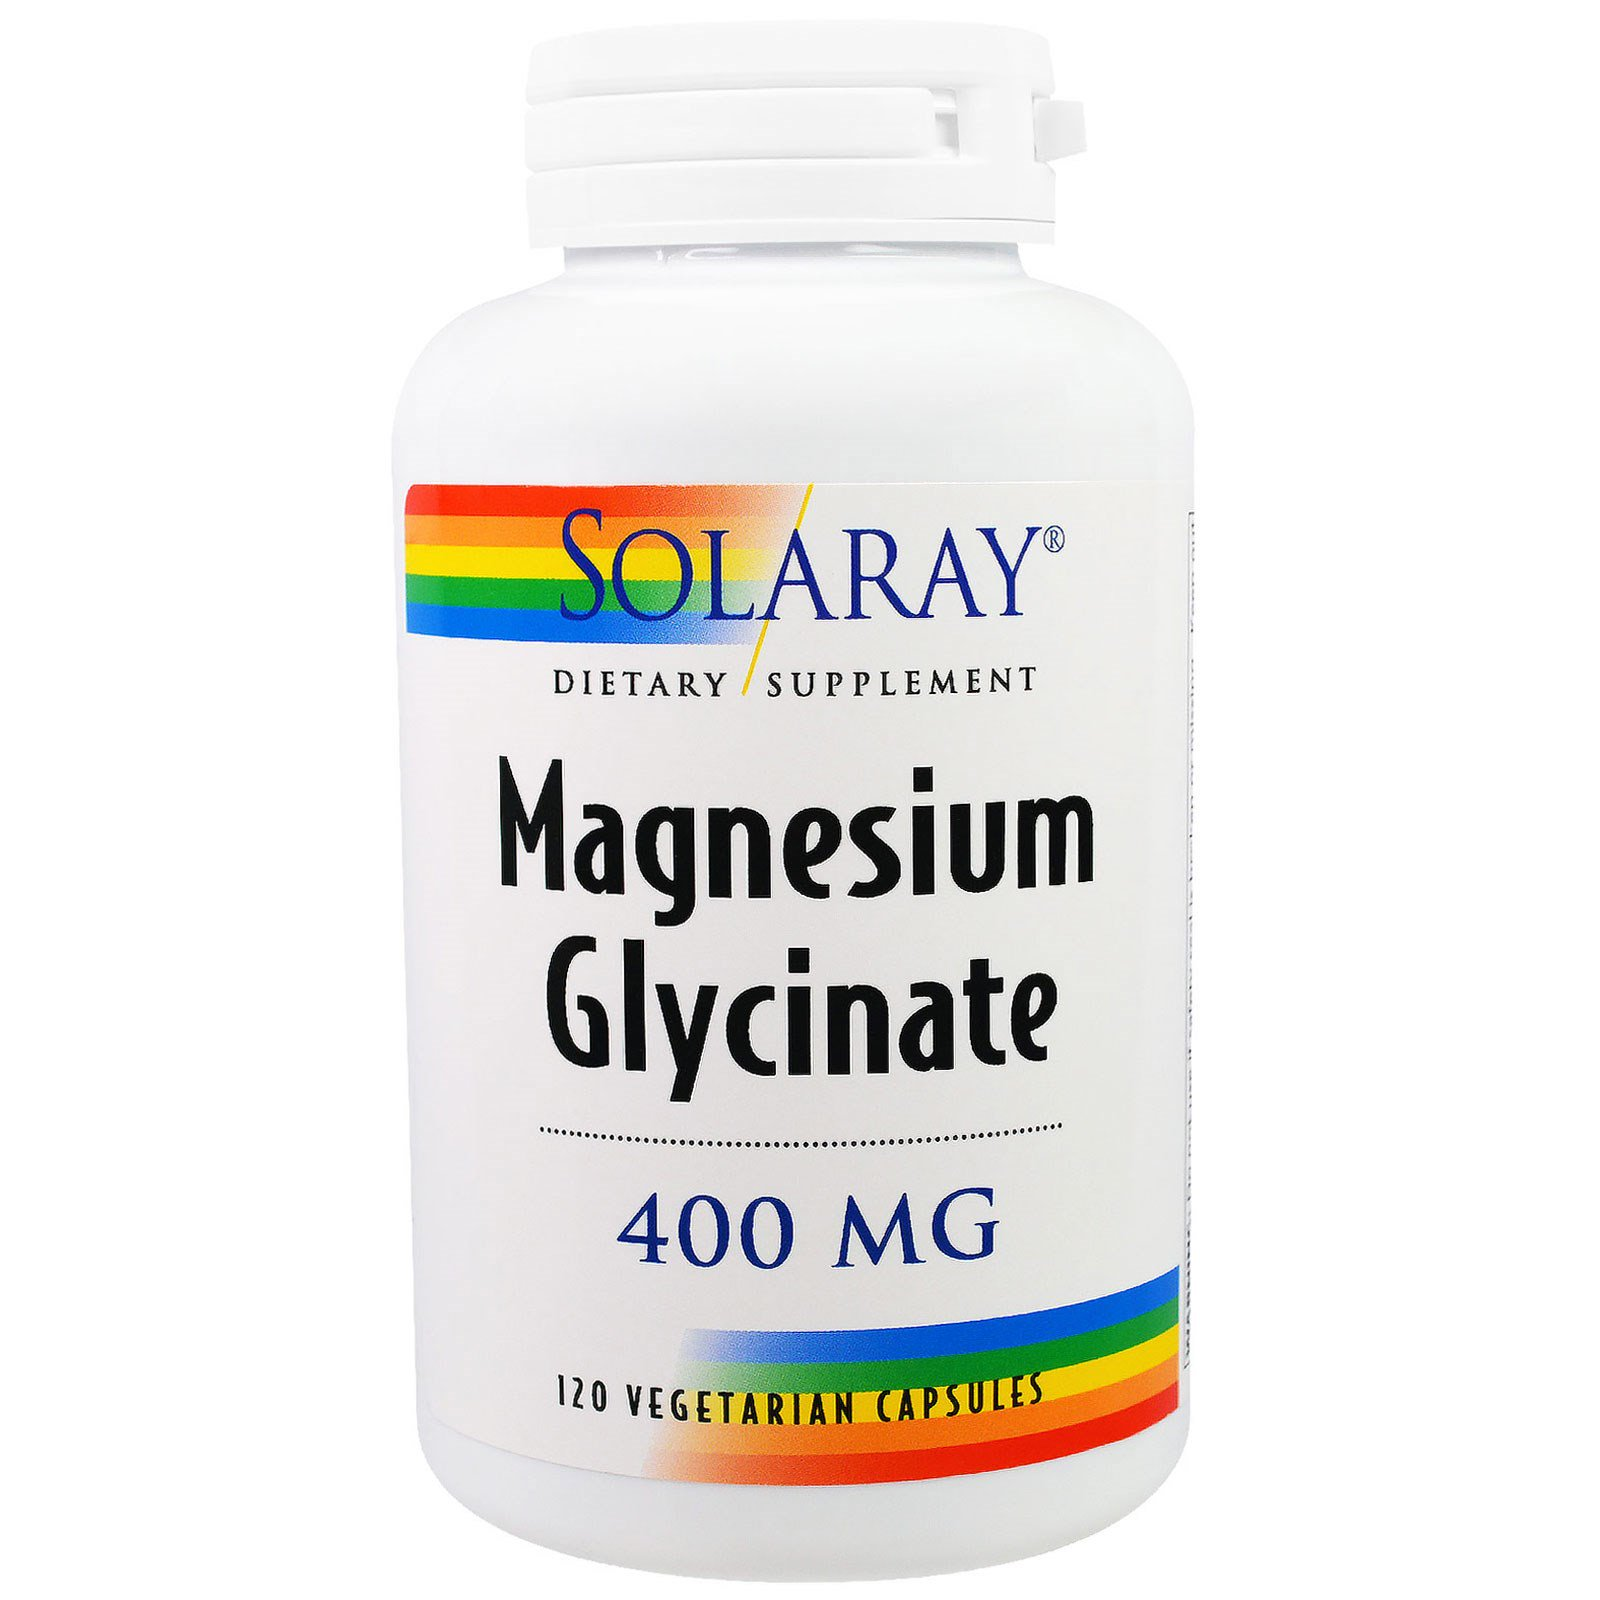 Magnesium glycinate to lower blood pressure